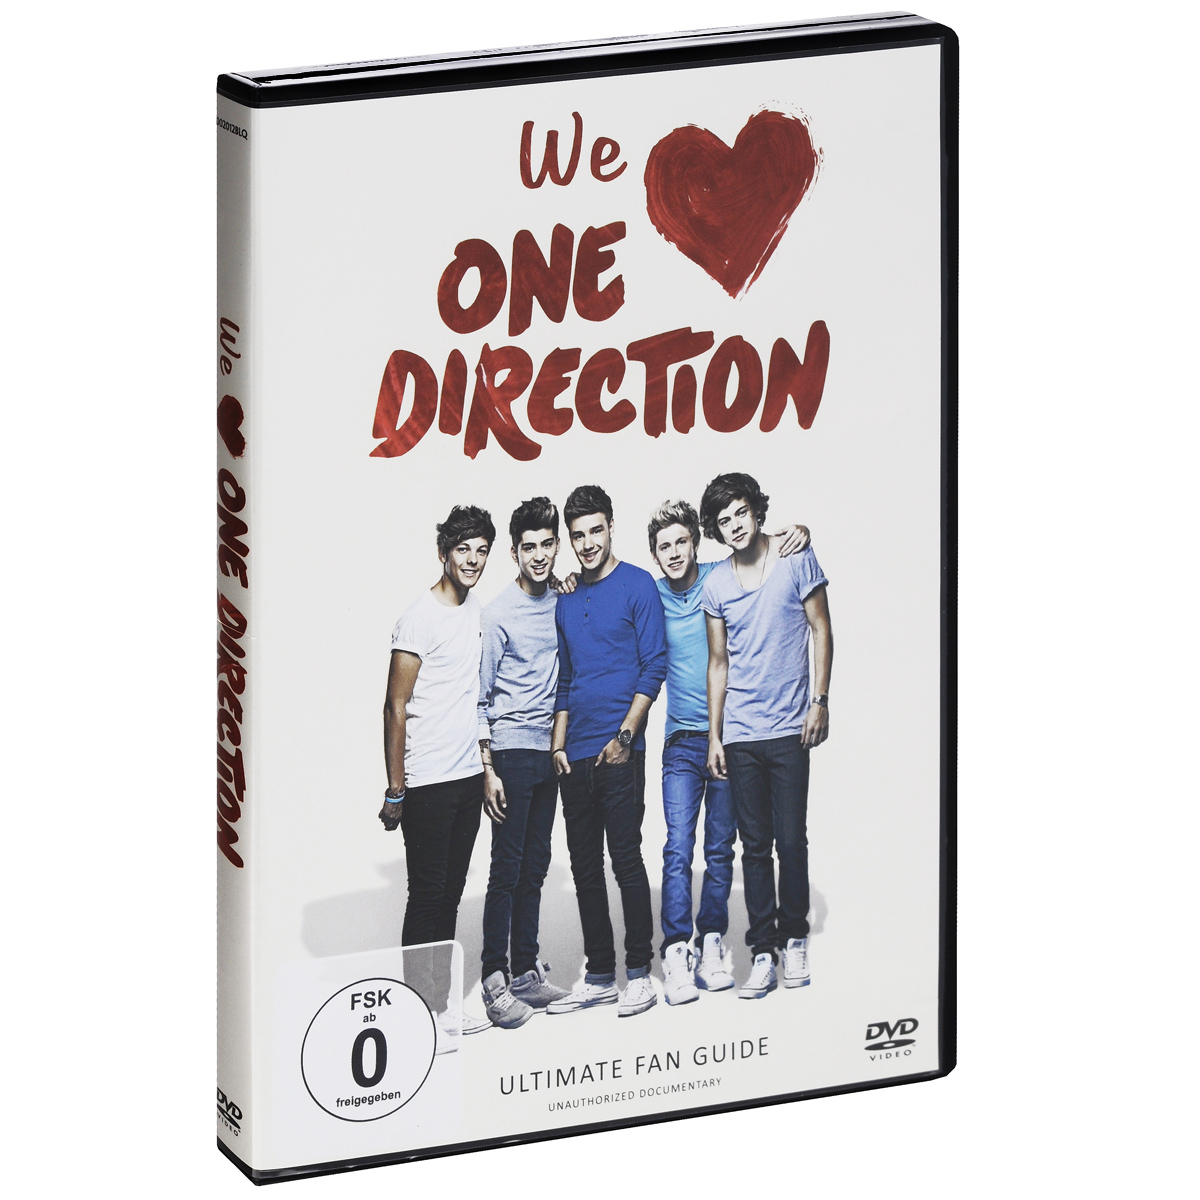 Superstar group One Direction has taken pop music fans all over the world by storm. Harry Styles, Liam Payne, Louis Tomlinson, Zayn Malik and Niall Horan exploded onto the scene and captured the hearts of fans from their start on The X Factor. With documentary we take a close look into how the combination of 1D s good looks, charm, and fan interaction catapulted them into mega-stardom. You II see a playful side of the guys through exclusive interviews spanning from their start to where they are now. We give you the true inside look at the stories behind the fame.